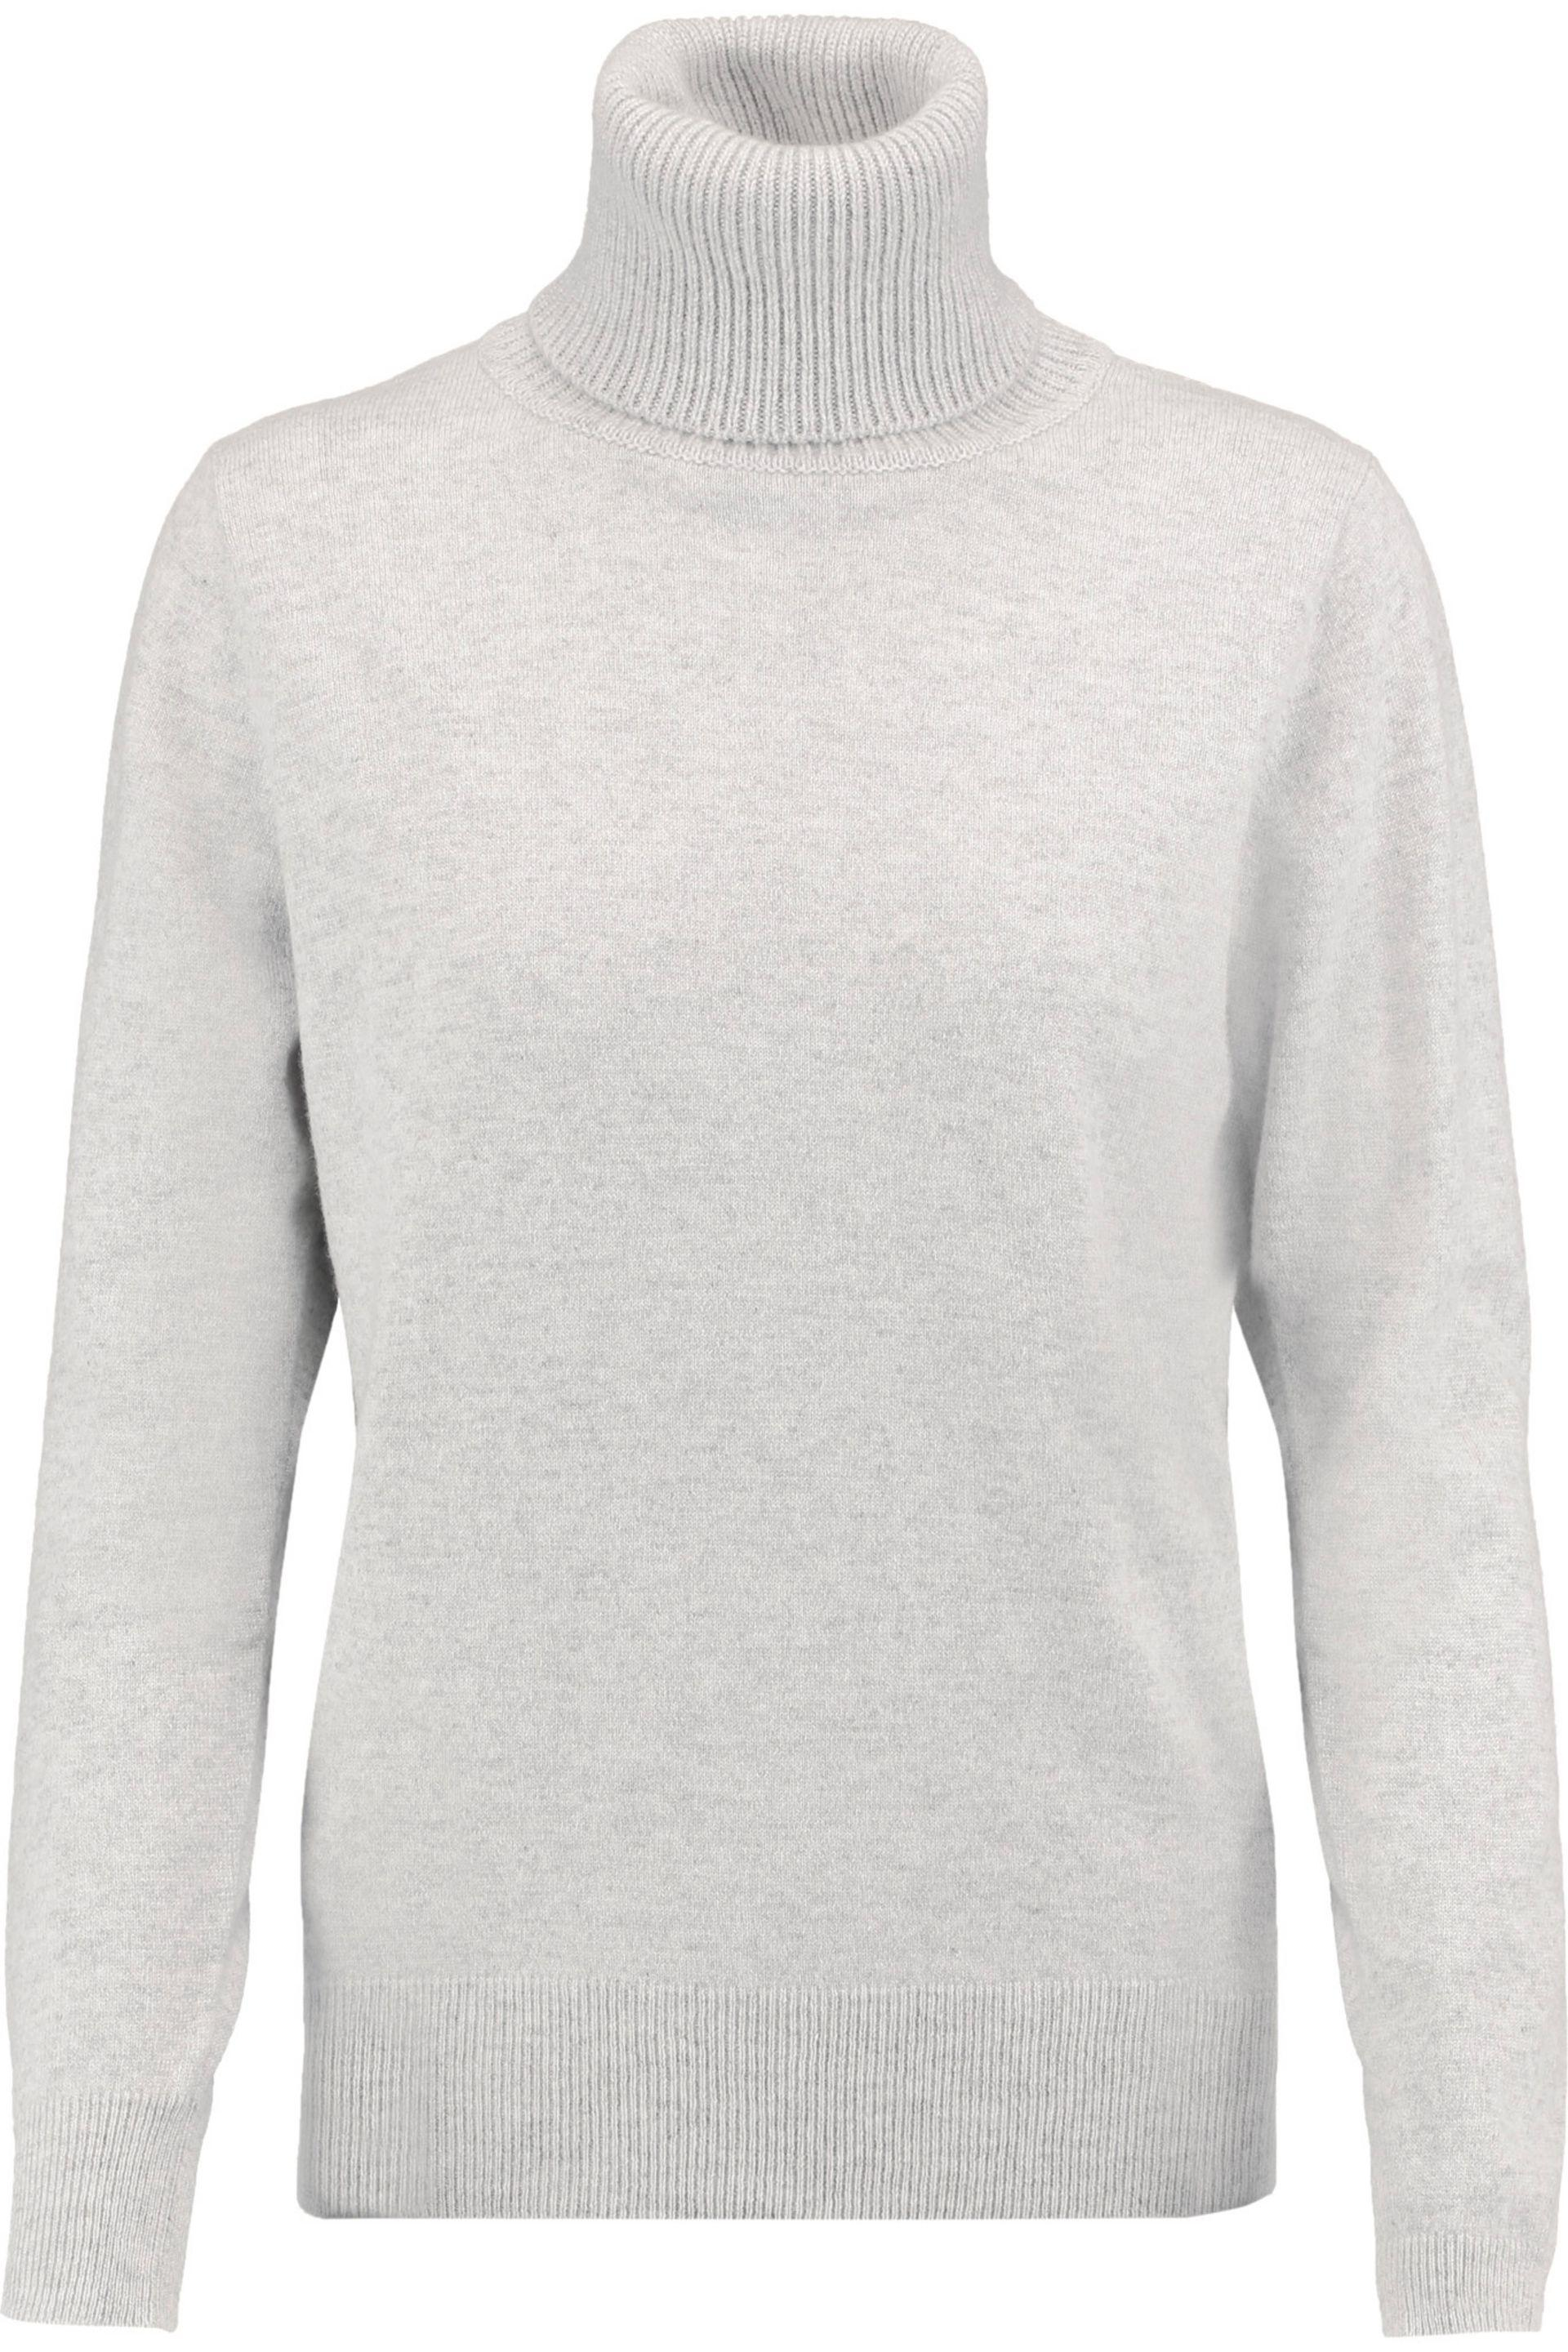 N.peal cashmere Cashmere Turtleneck Sweater Light Gray in Gray | Lyst